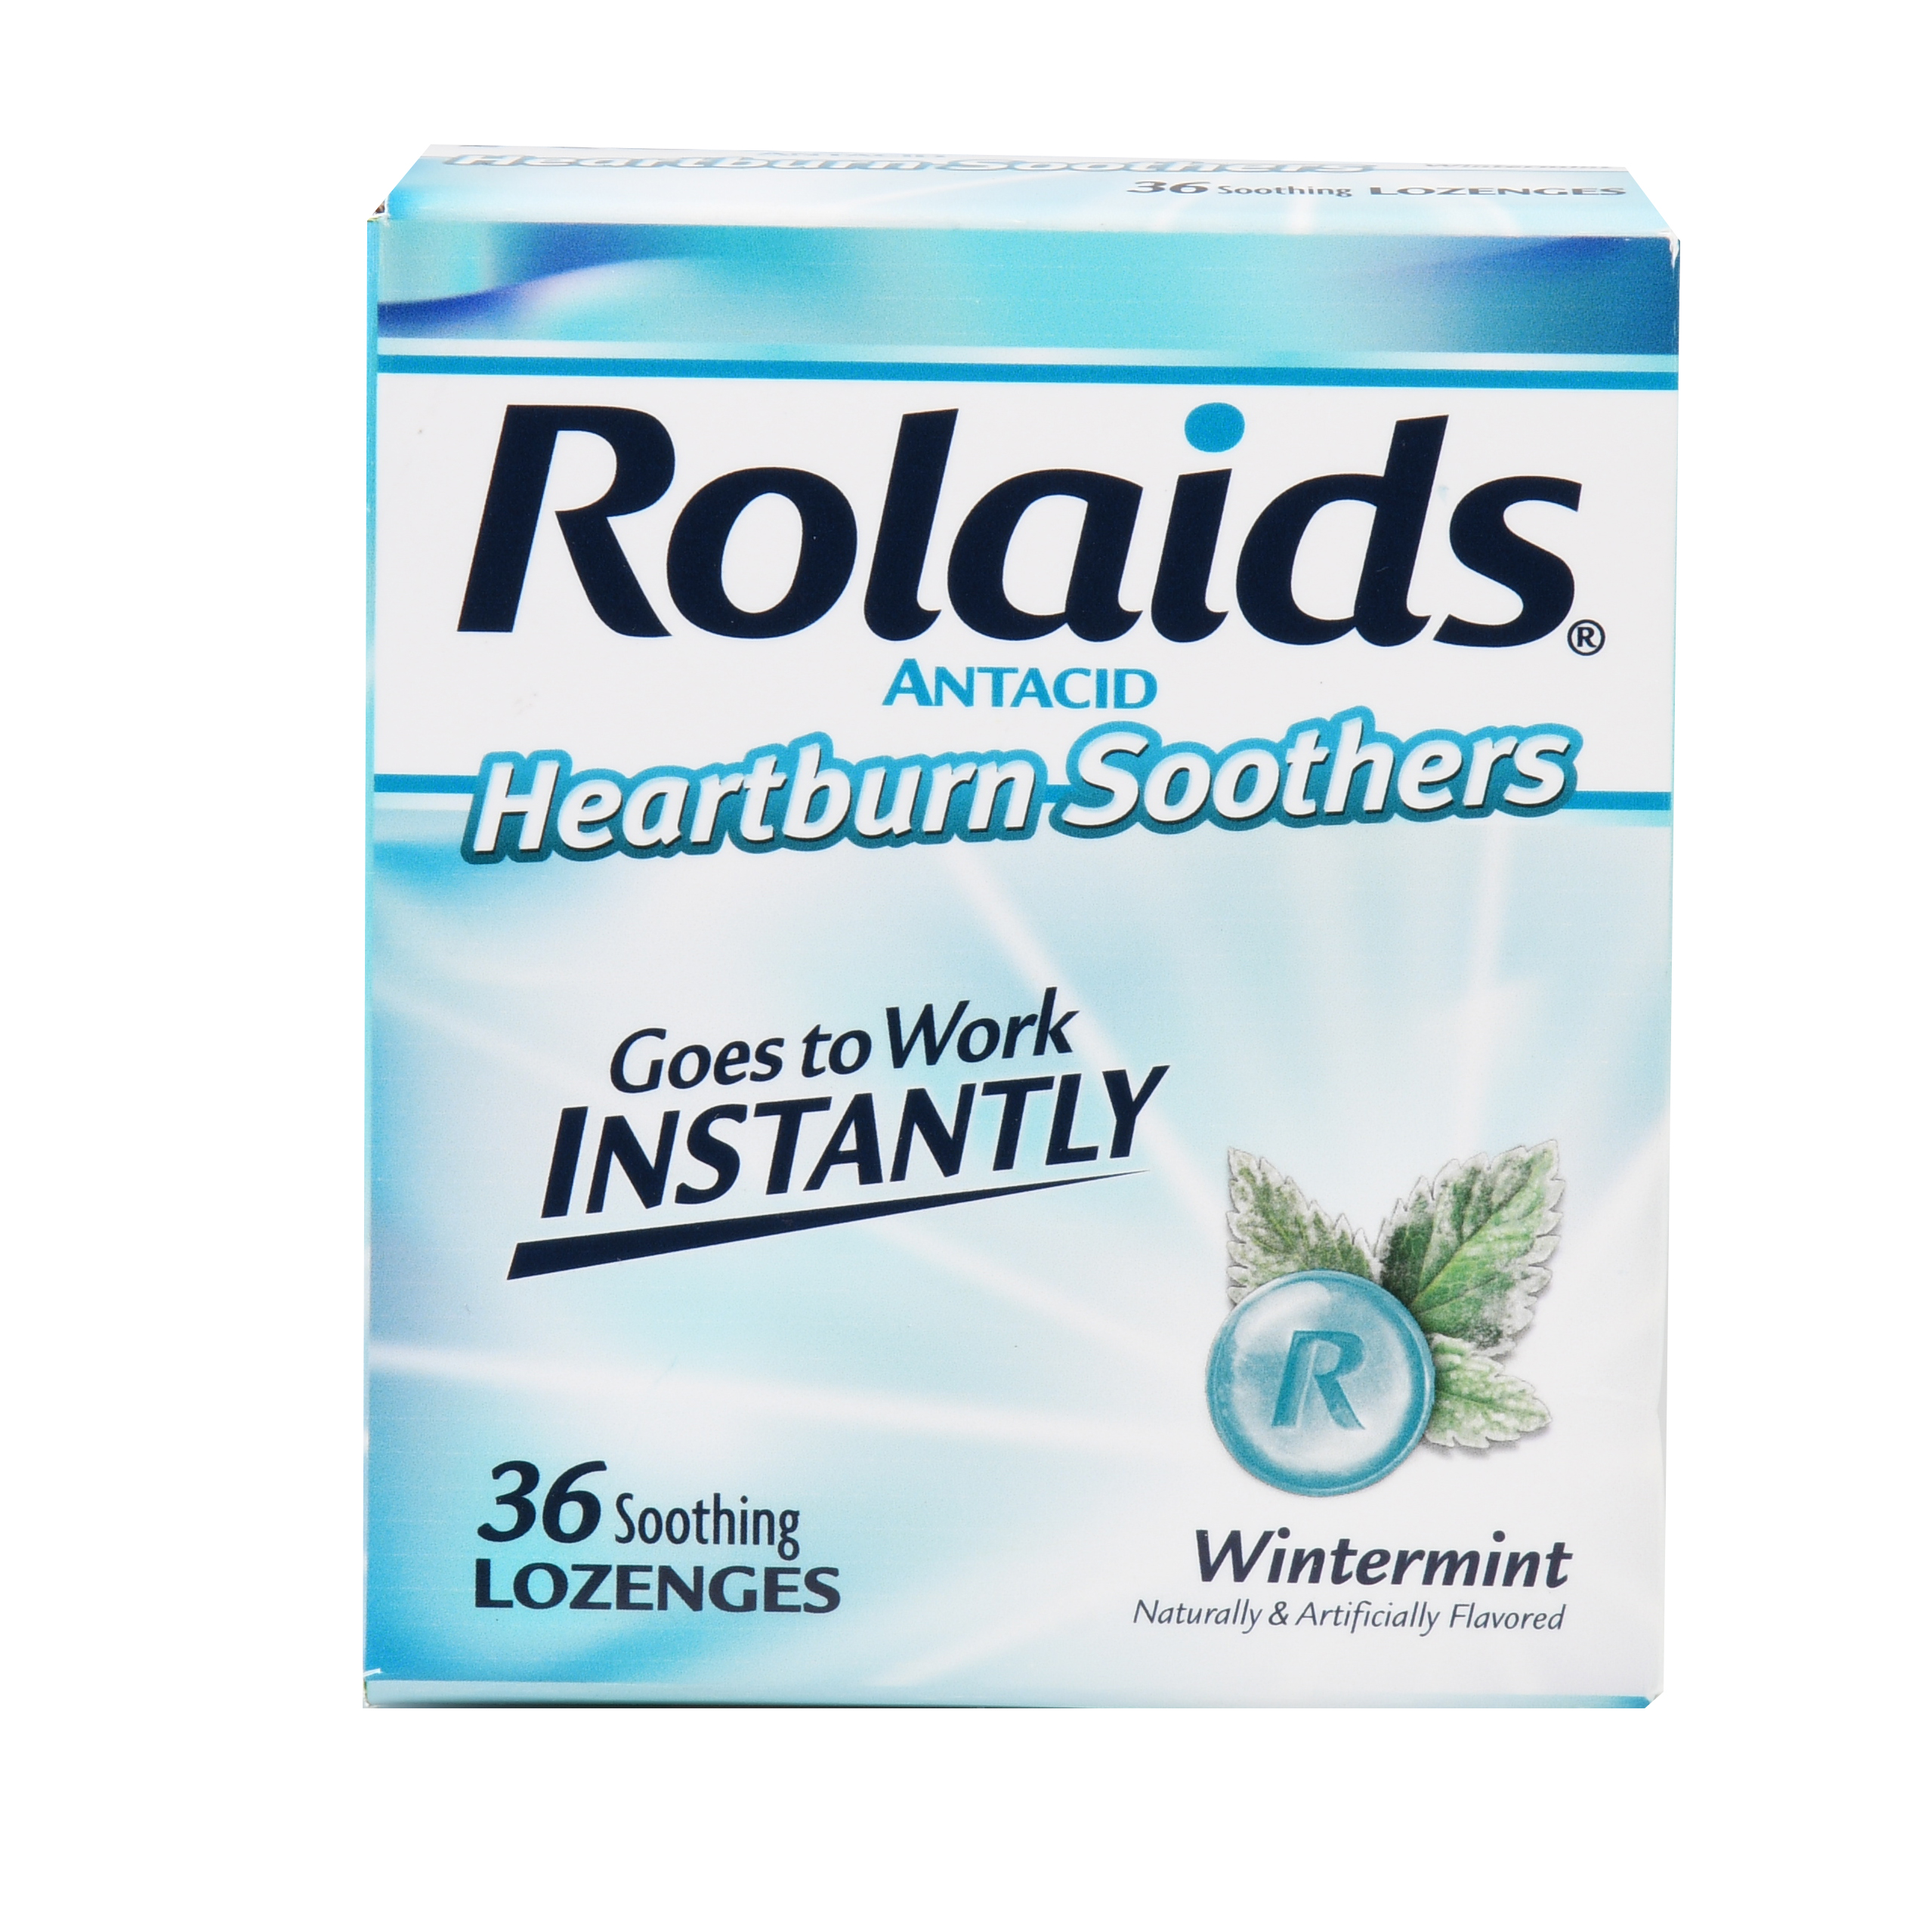 Rolaids Heartburn Soothers 36ct